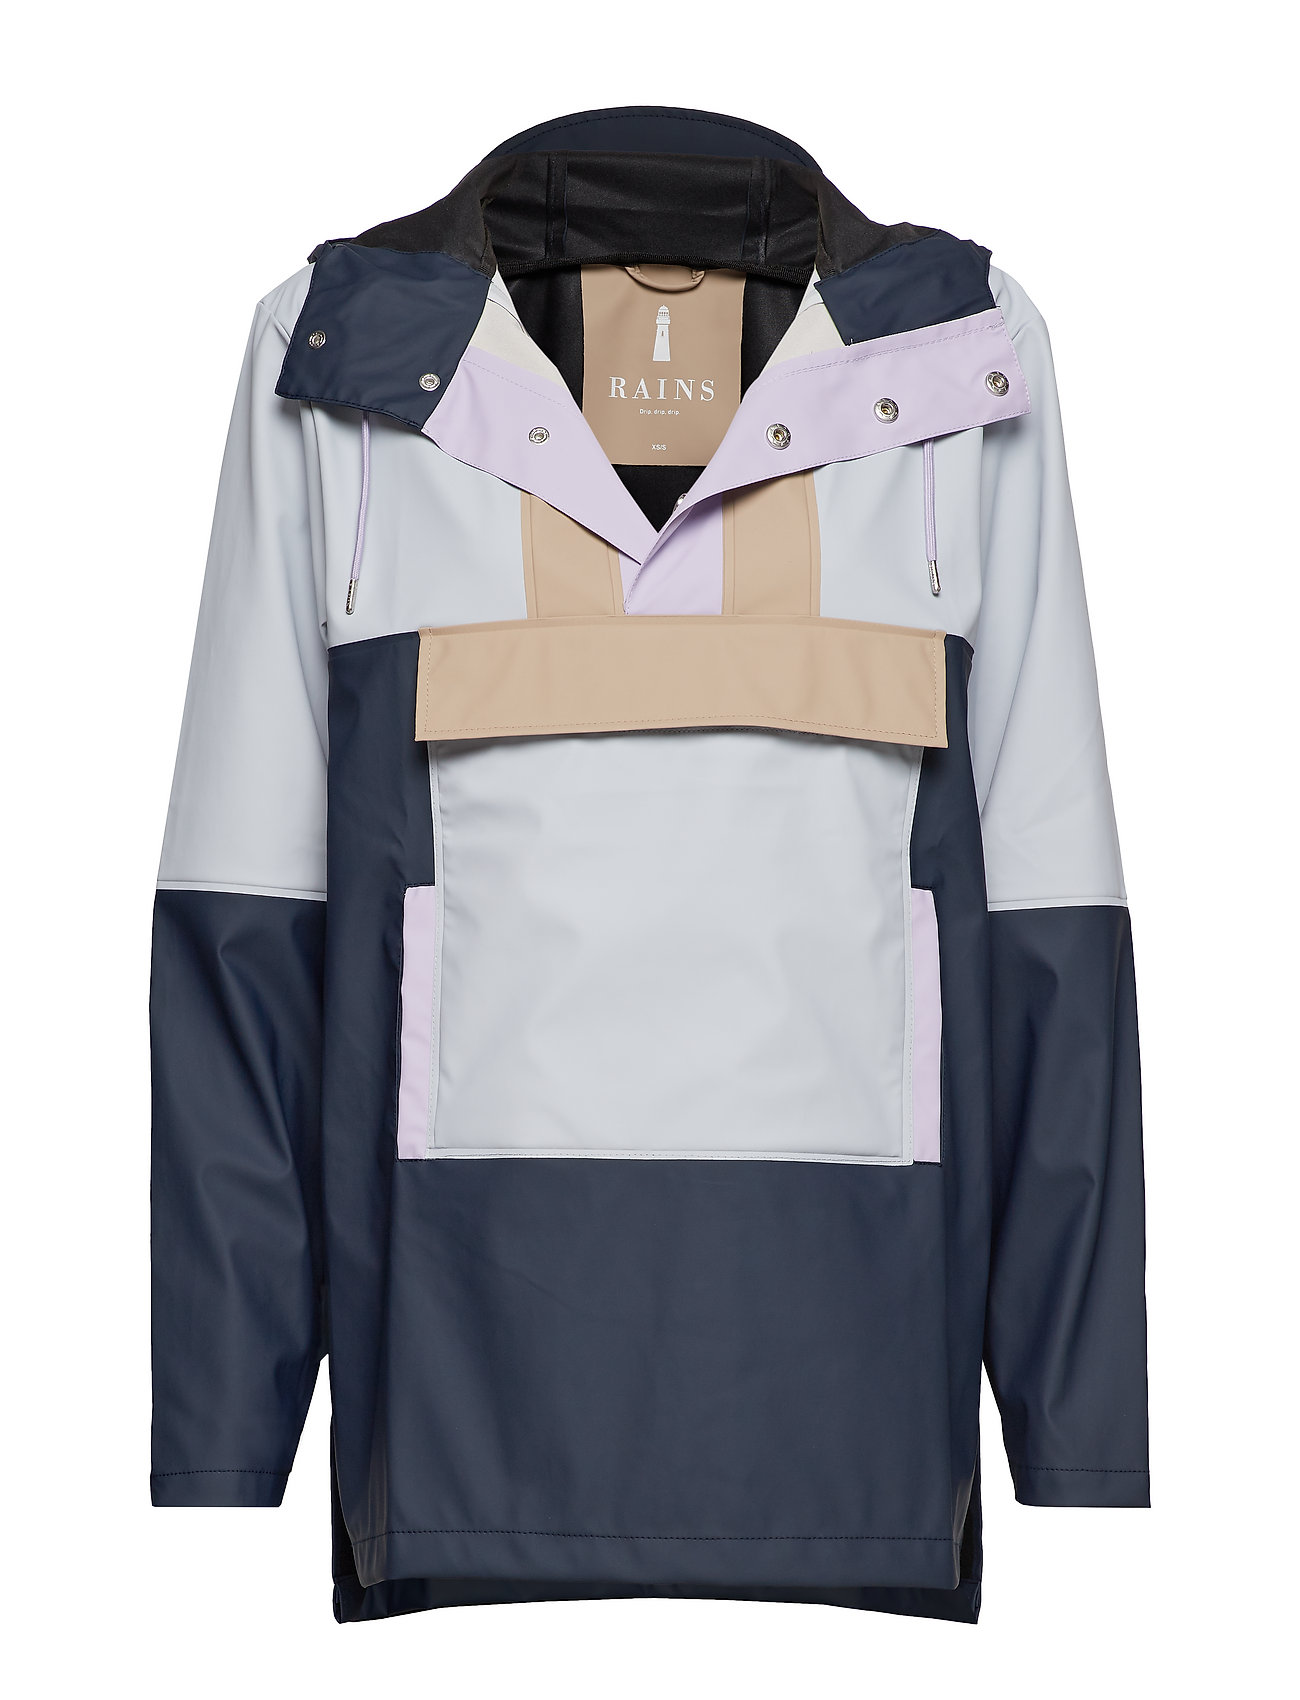 Rains Color Block Anorak - BLUE/ICE GREY